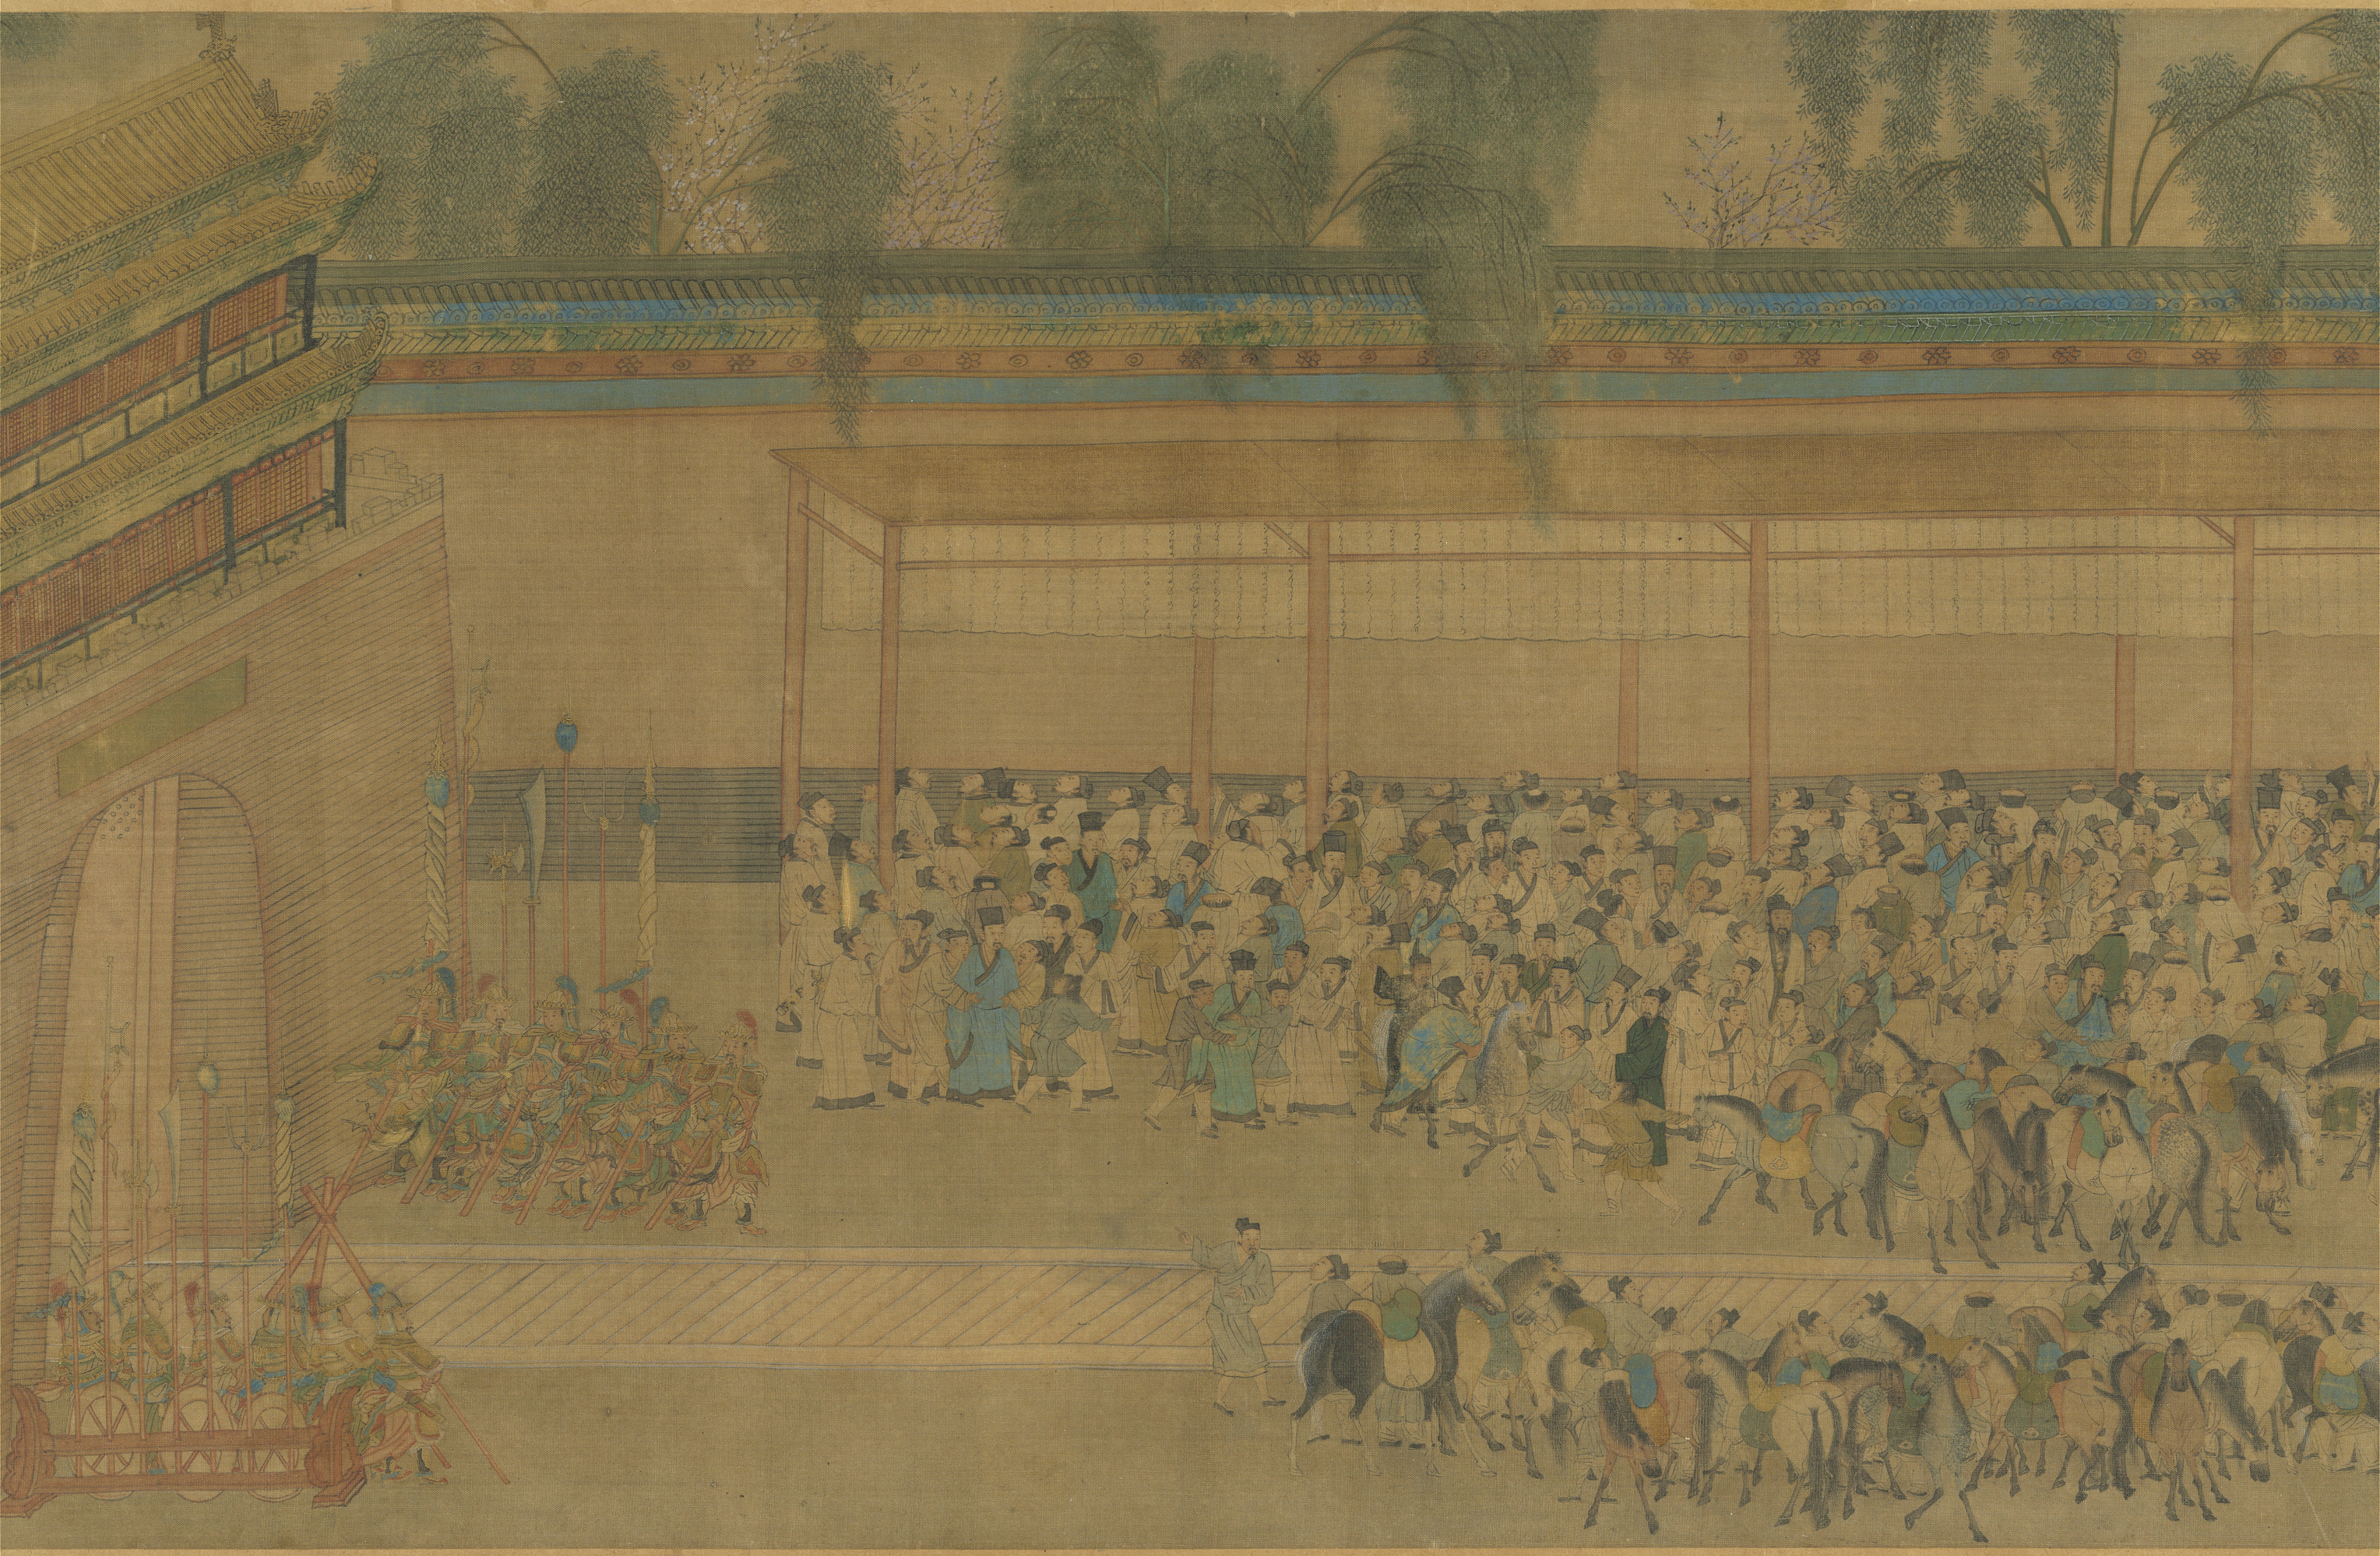 Civil service exam candidates gather around the wall where results had been posted. Artwork by Qiu Ying (仇英 c.1540).